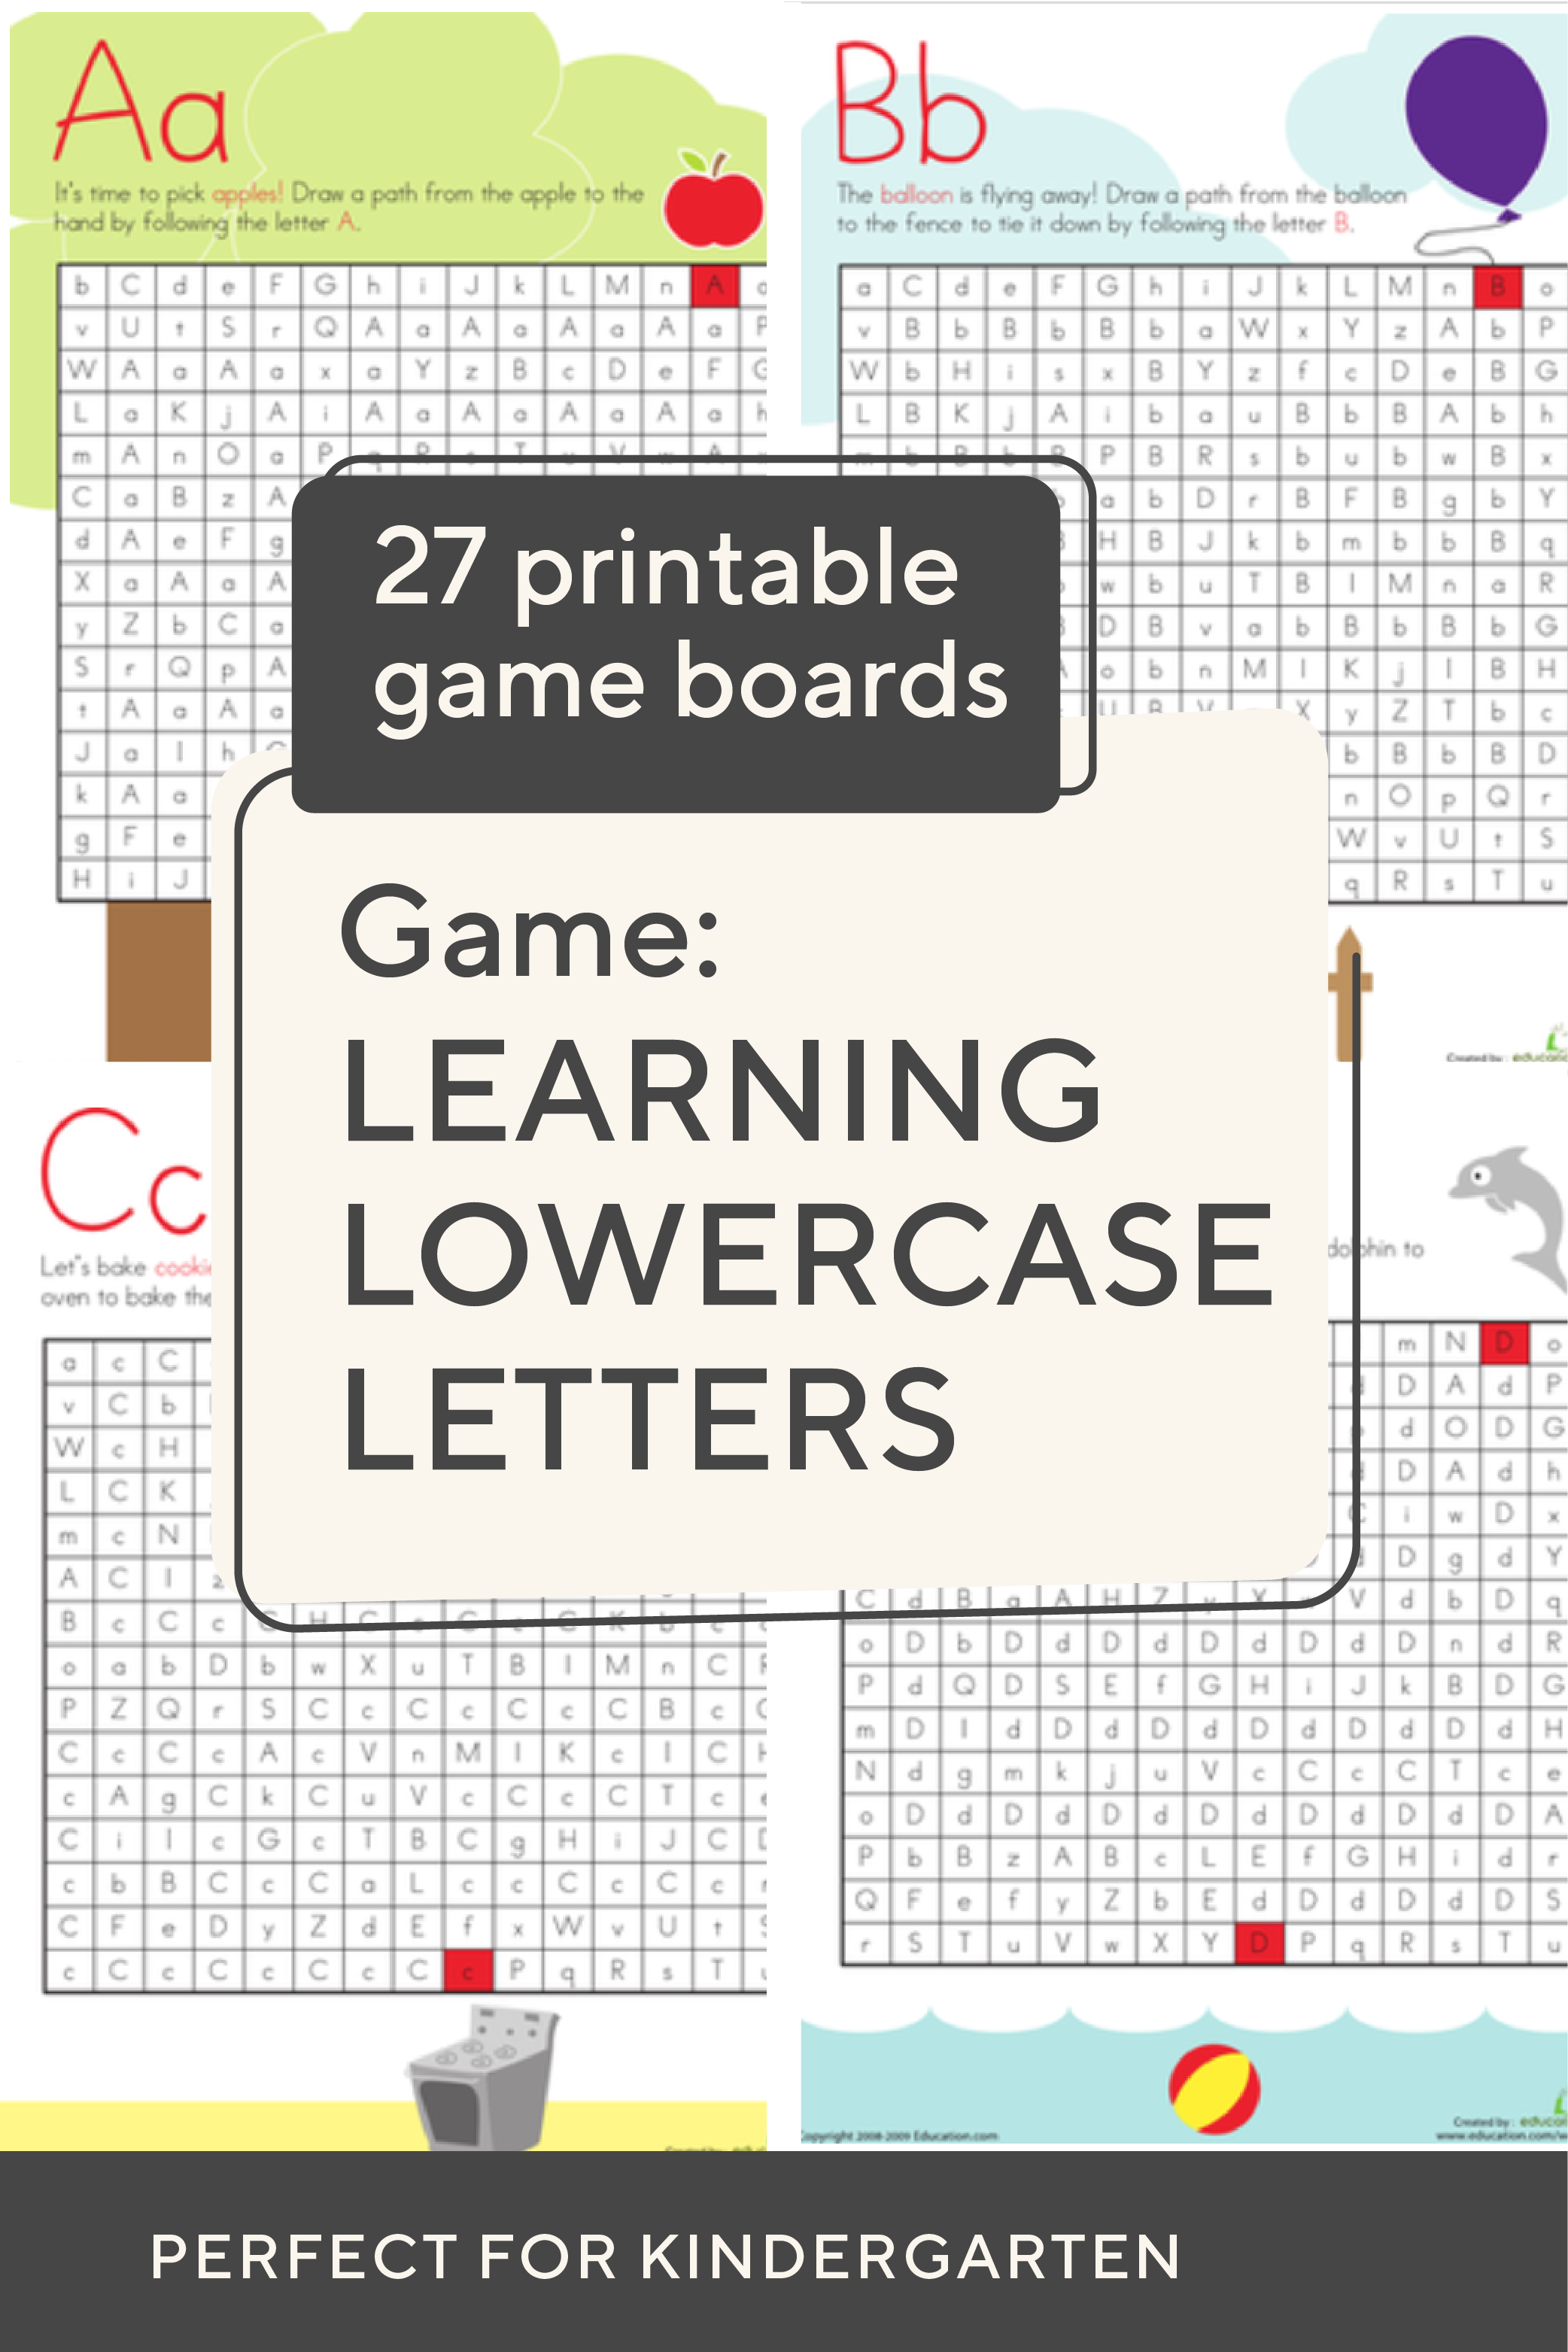 Try These Free Printable Letter Mazes To Help Your Little